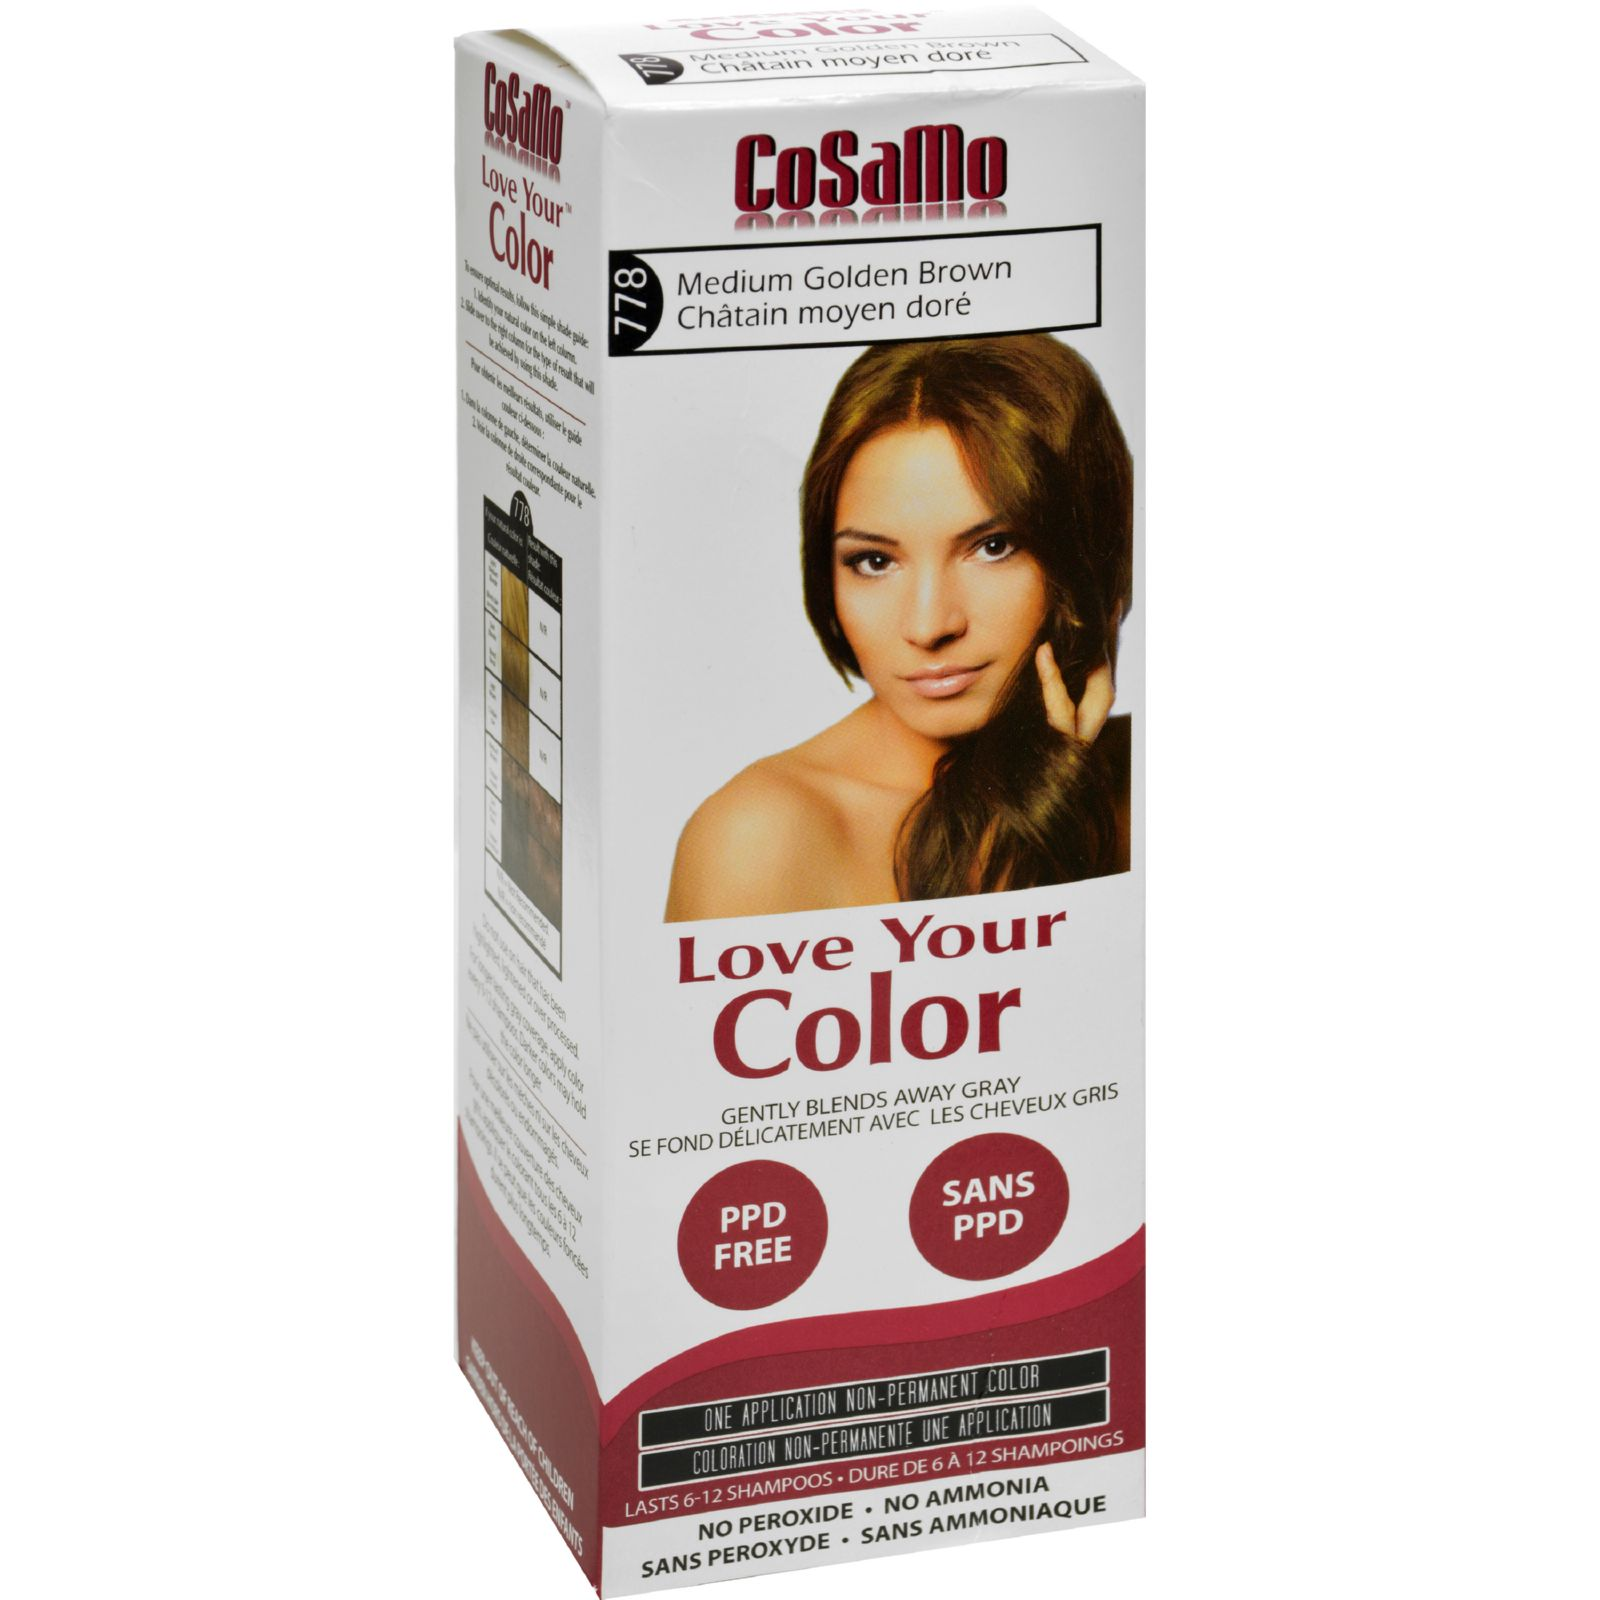 Hair Color - CoSaMo - Non Permanent - Med Gold Brown - 1 ct